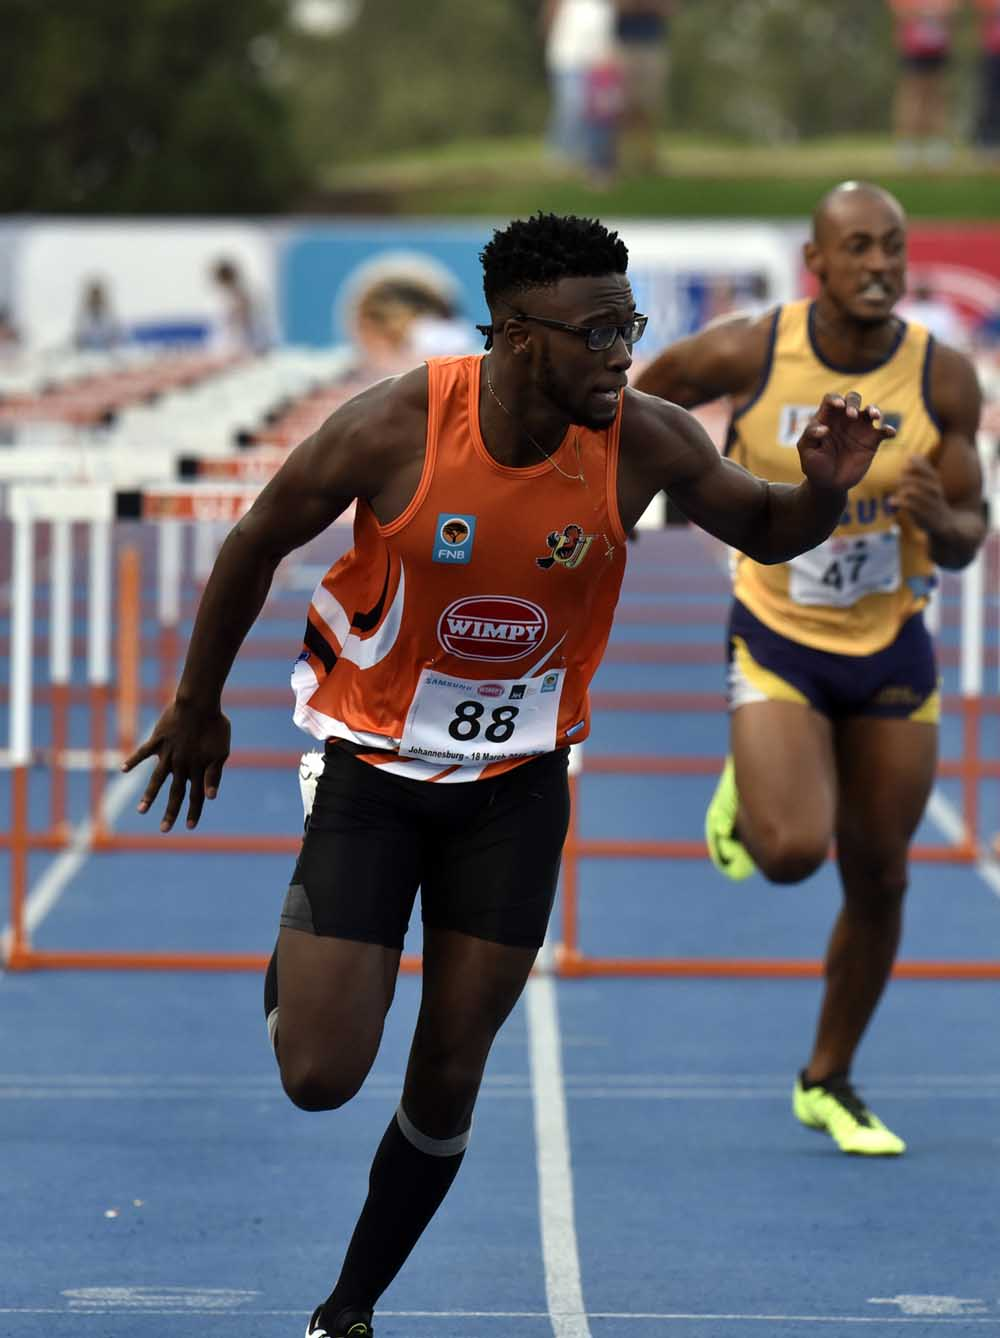 UJ hurdler Tshepo Lefete is ready to rumble in the Ussa athletics championships. Photo: Saspa